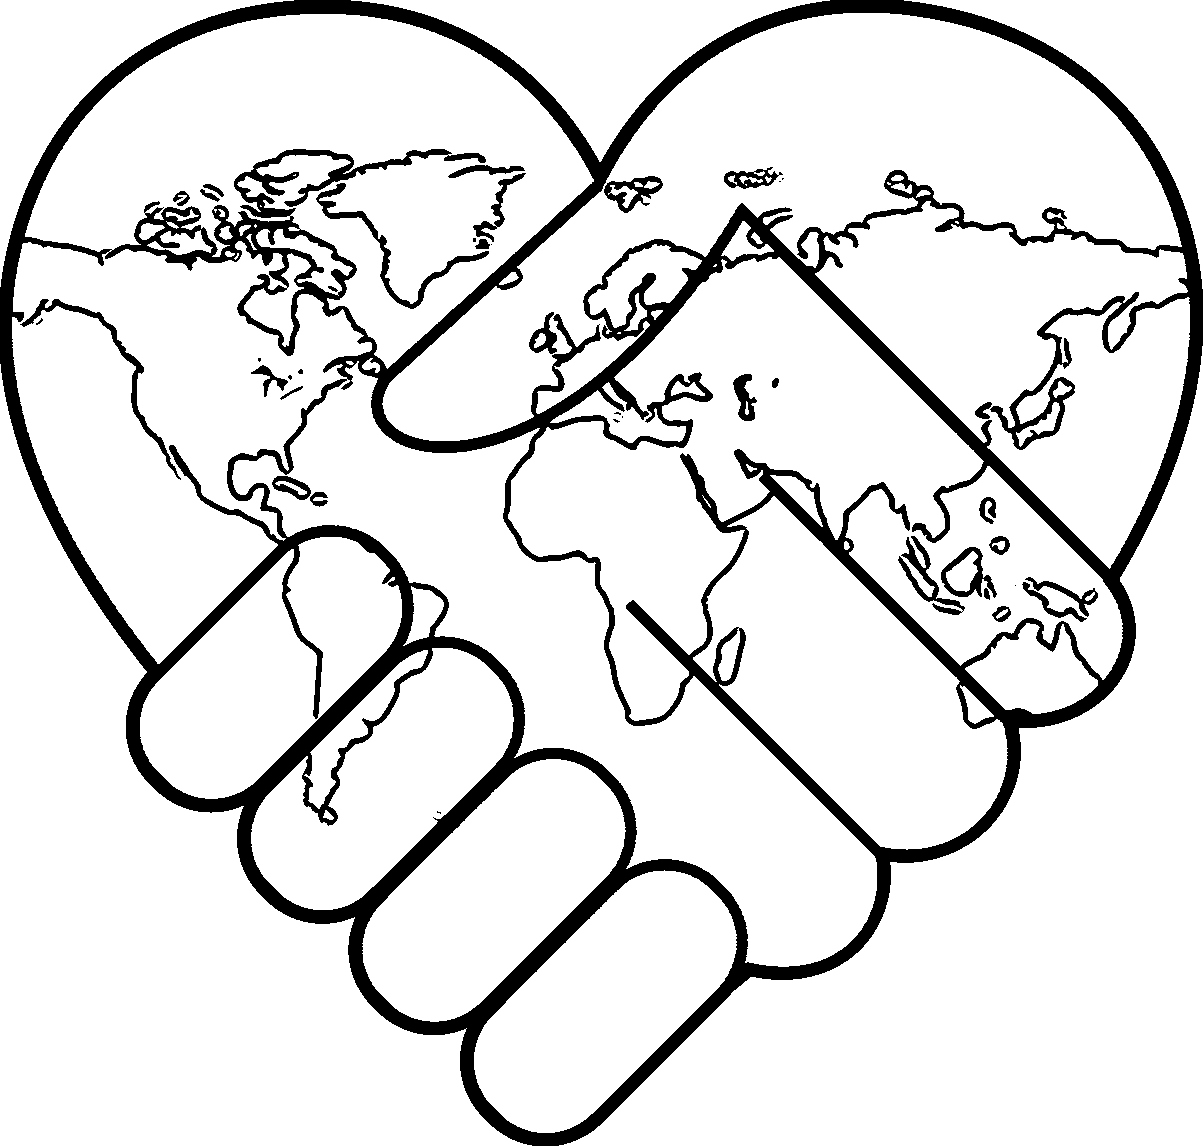 1203x1146 Peace Coloring Pages Fresh World Peace Coloring Pages Az Coloring